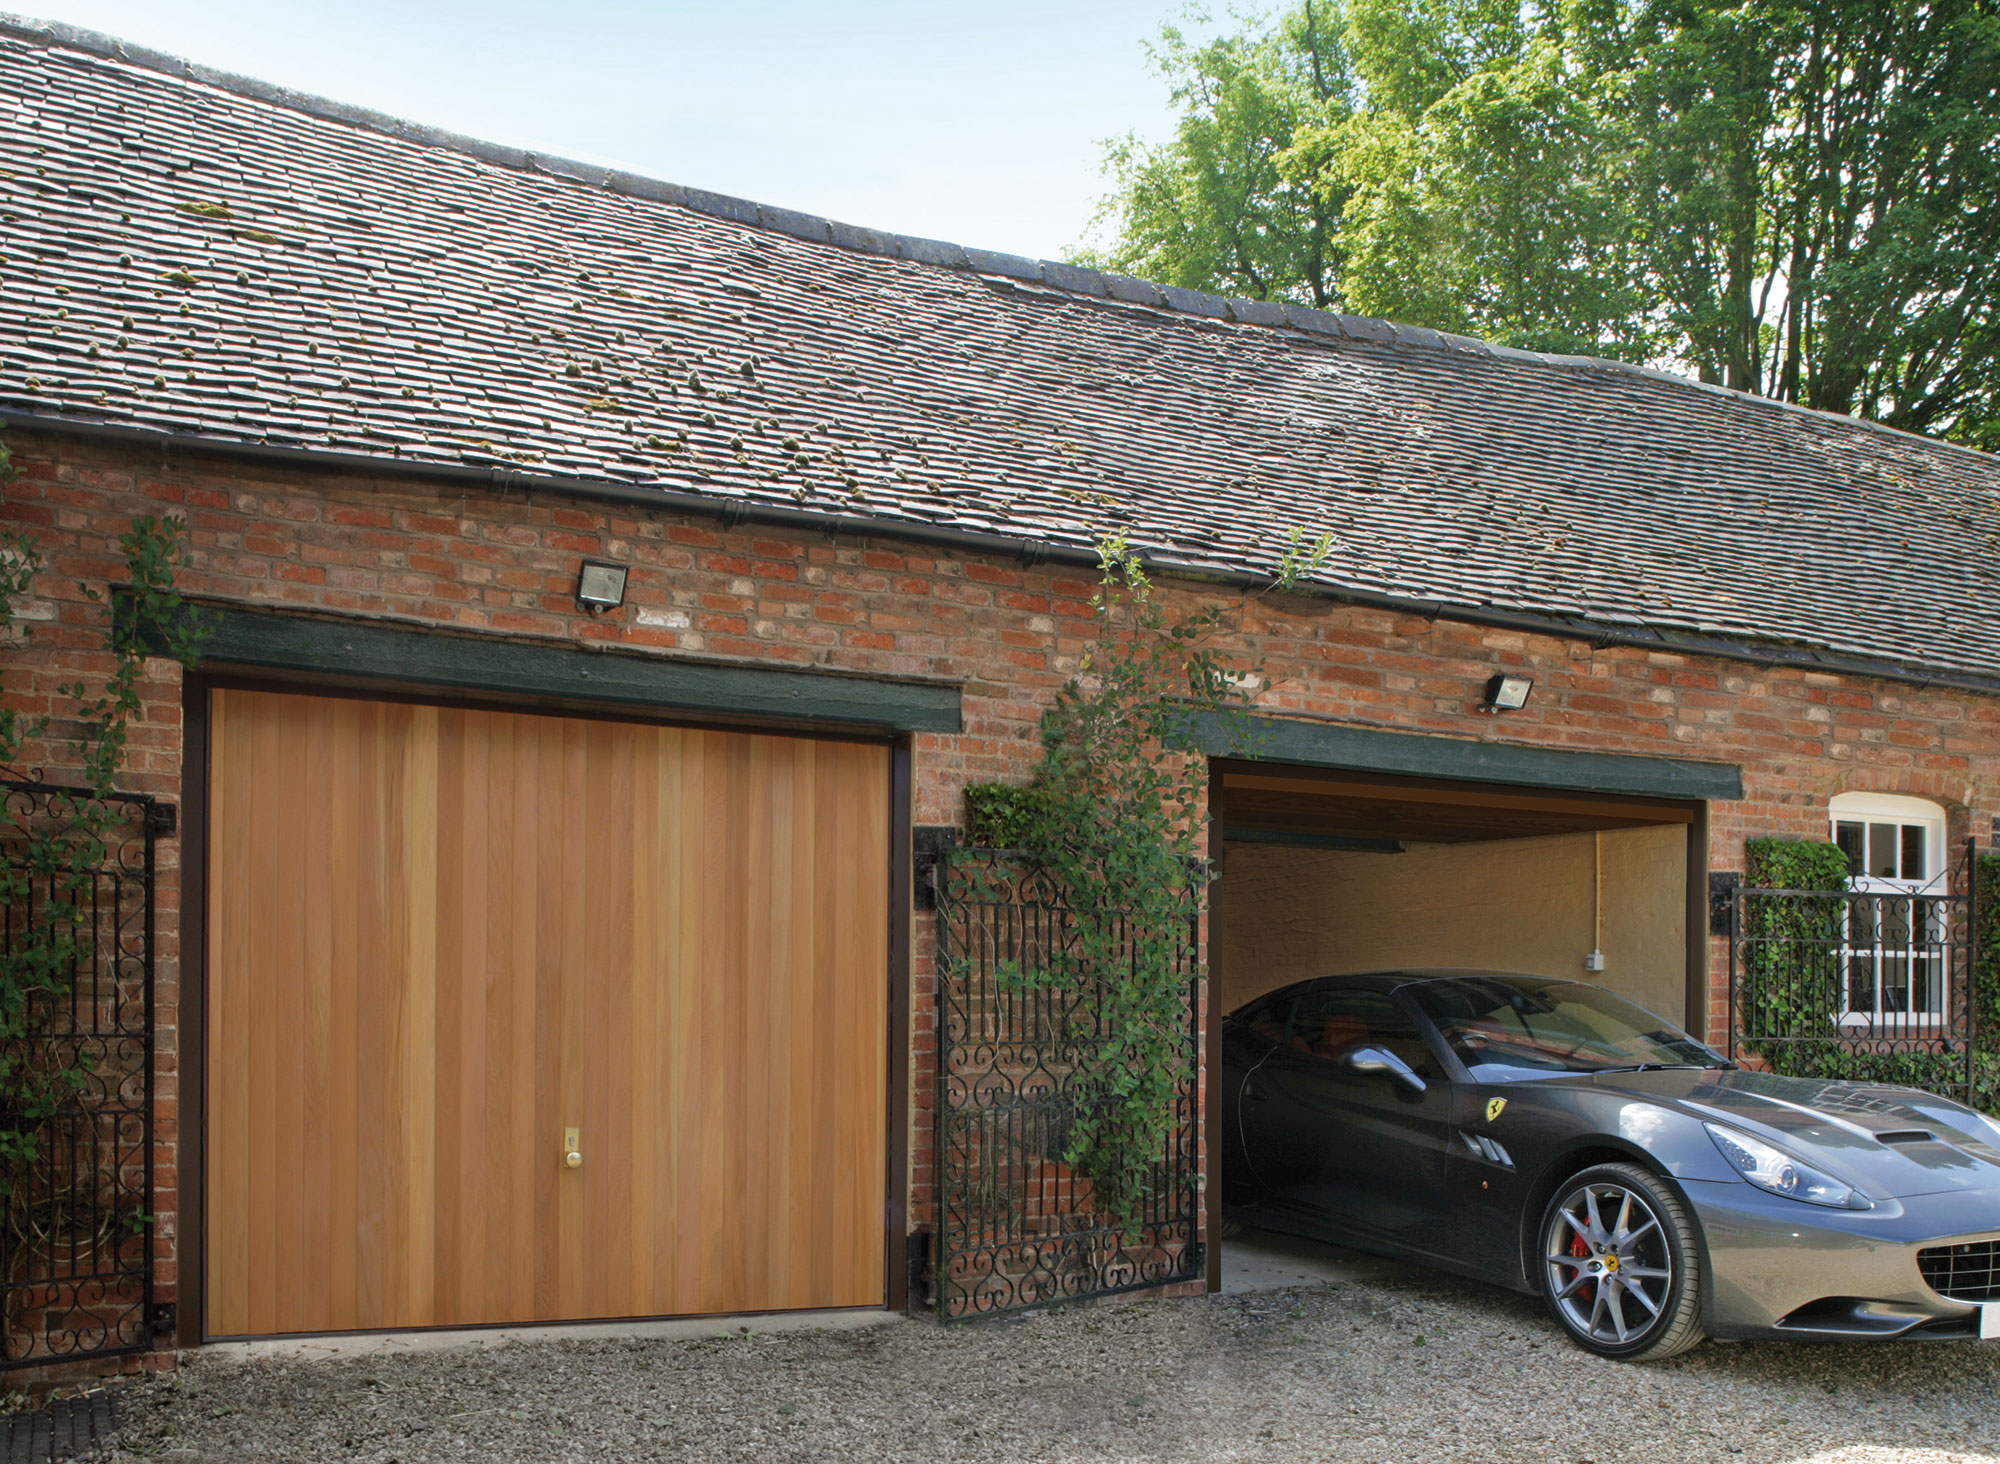 8 Types Of Garage Door The Best Styles Materials And Configurations Real Homes